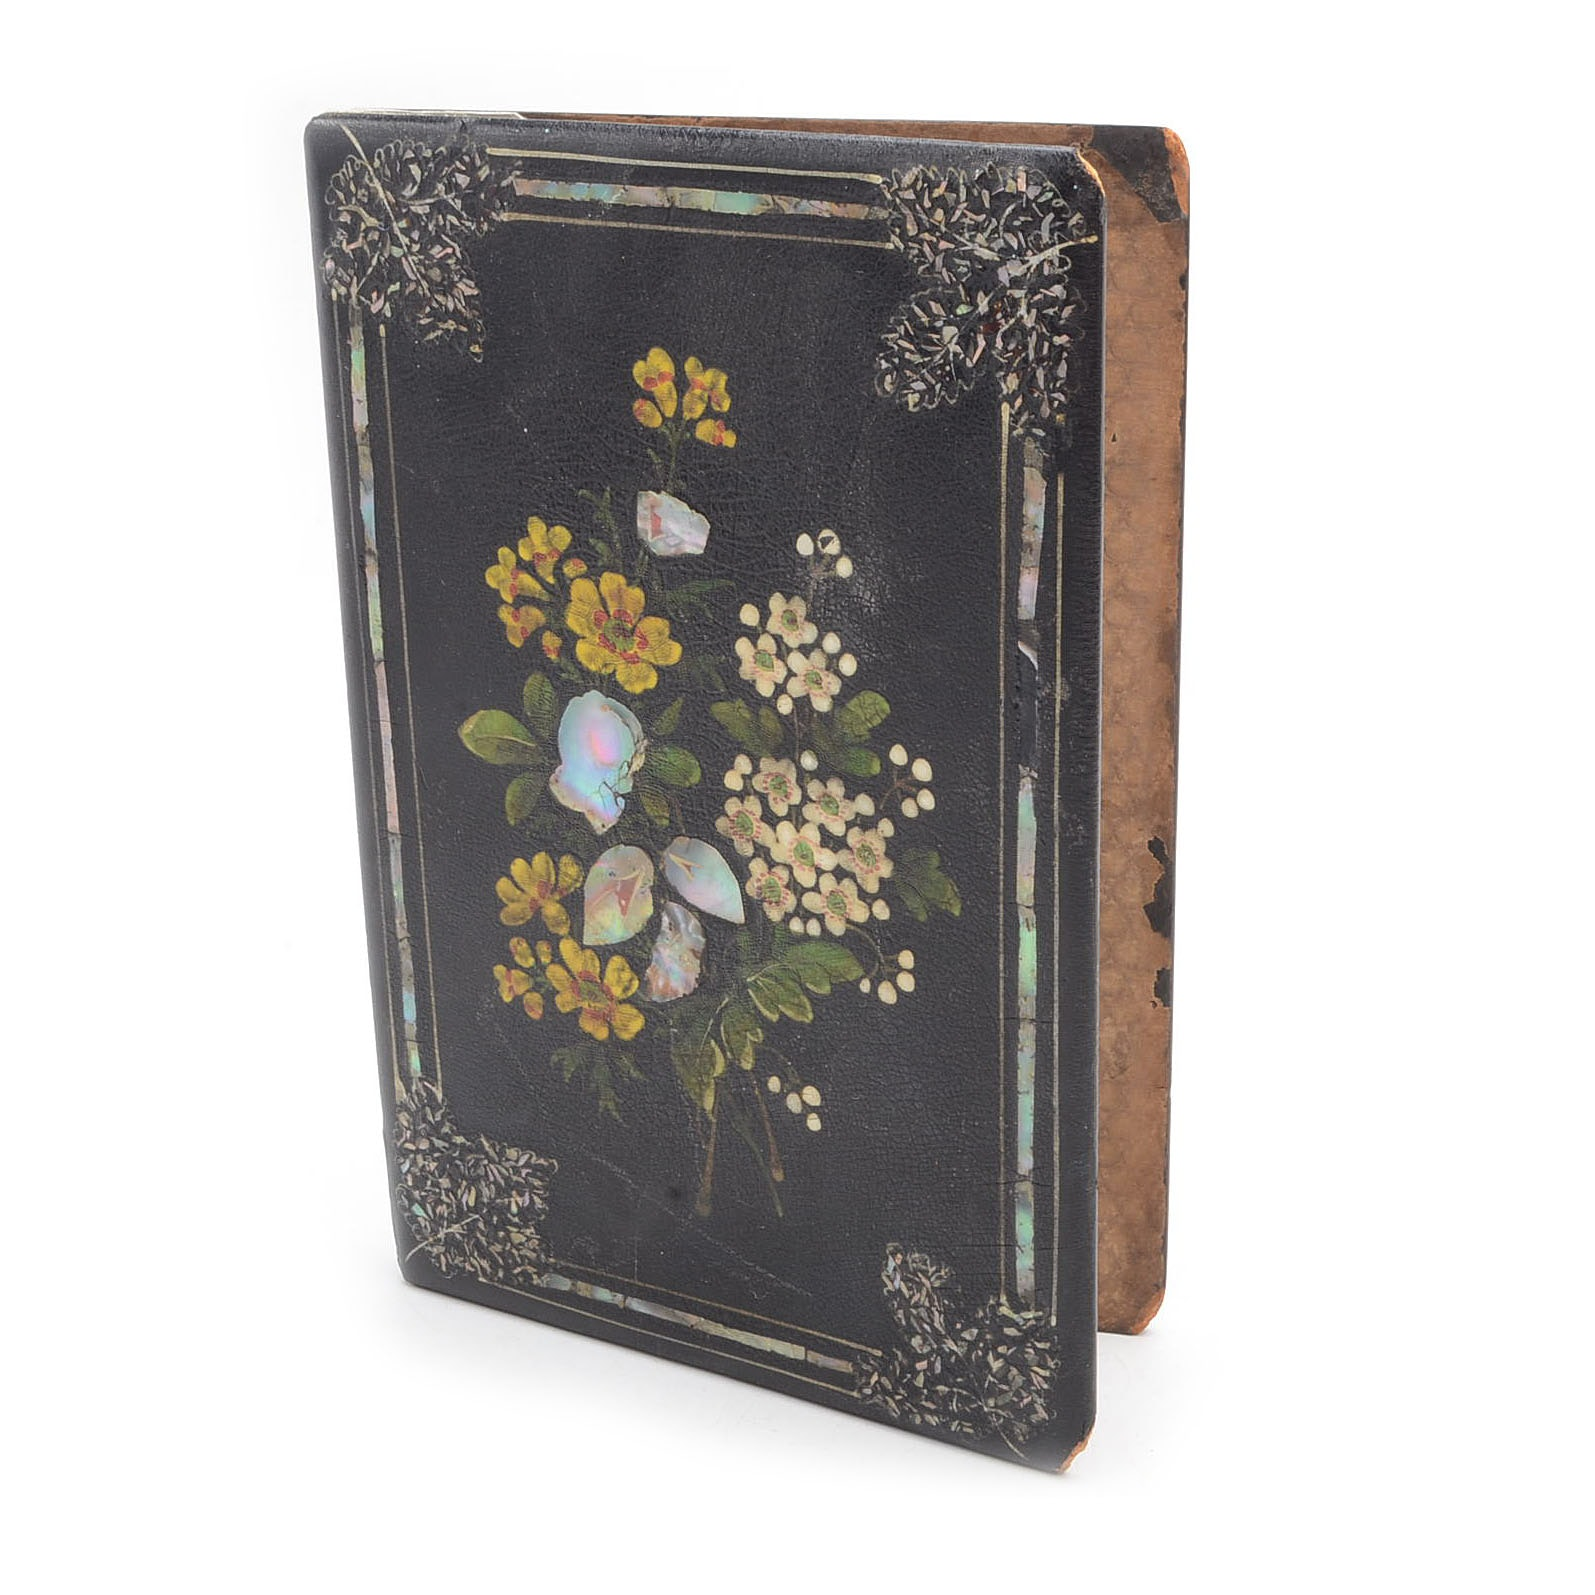 Vintage Book Cover with Mother-of-Pearl Inlay